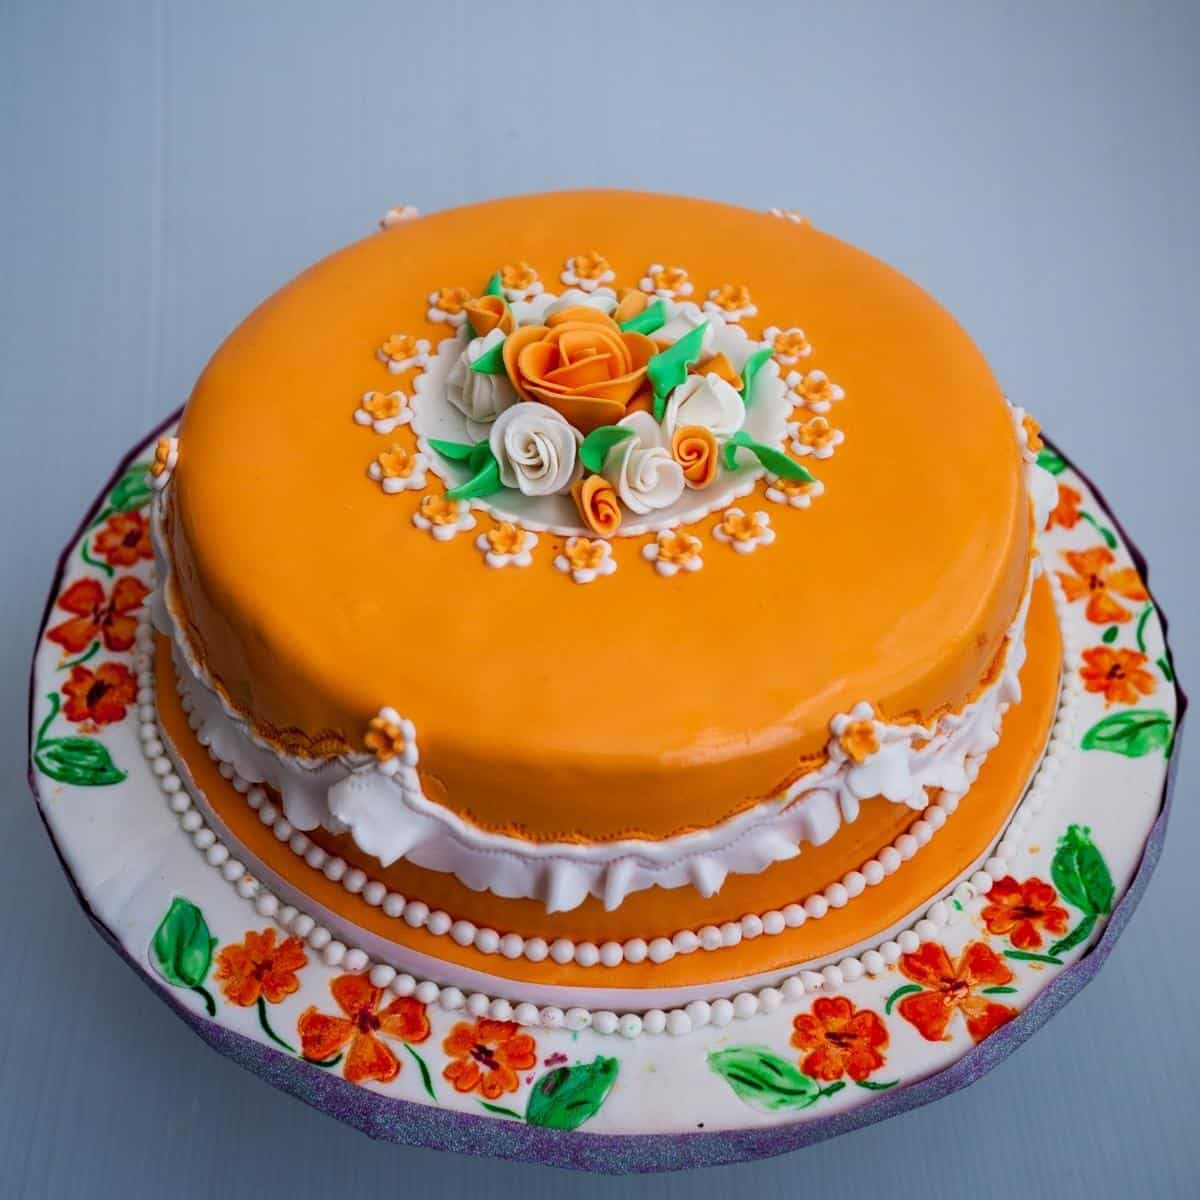 A cake covered with marzipan and fondant.